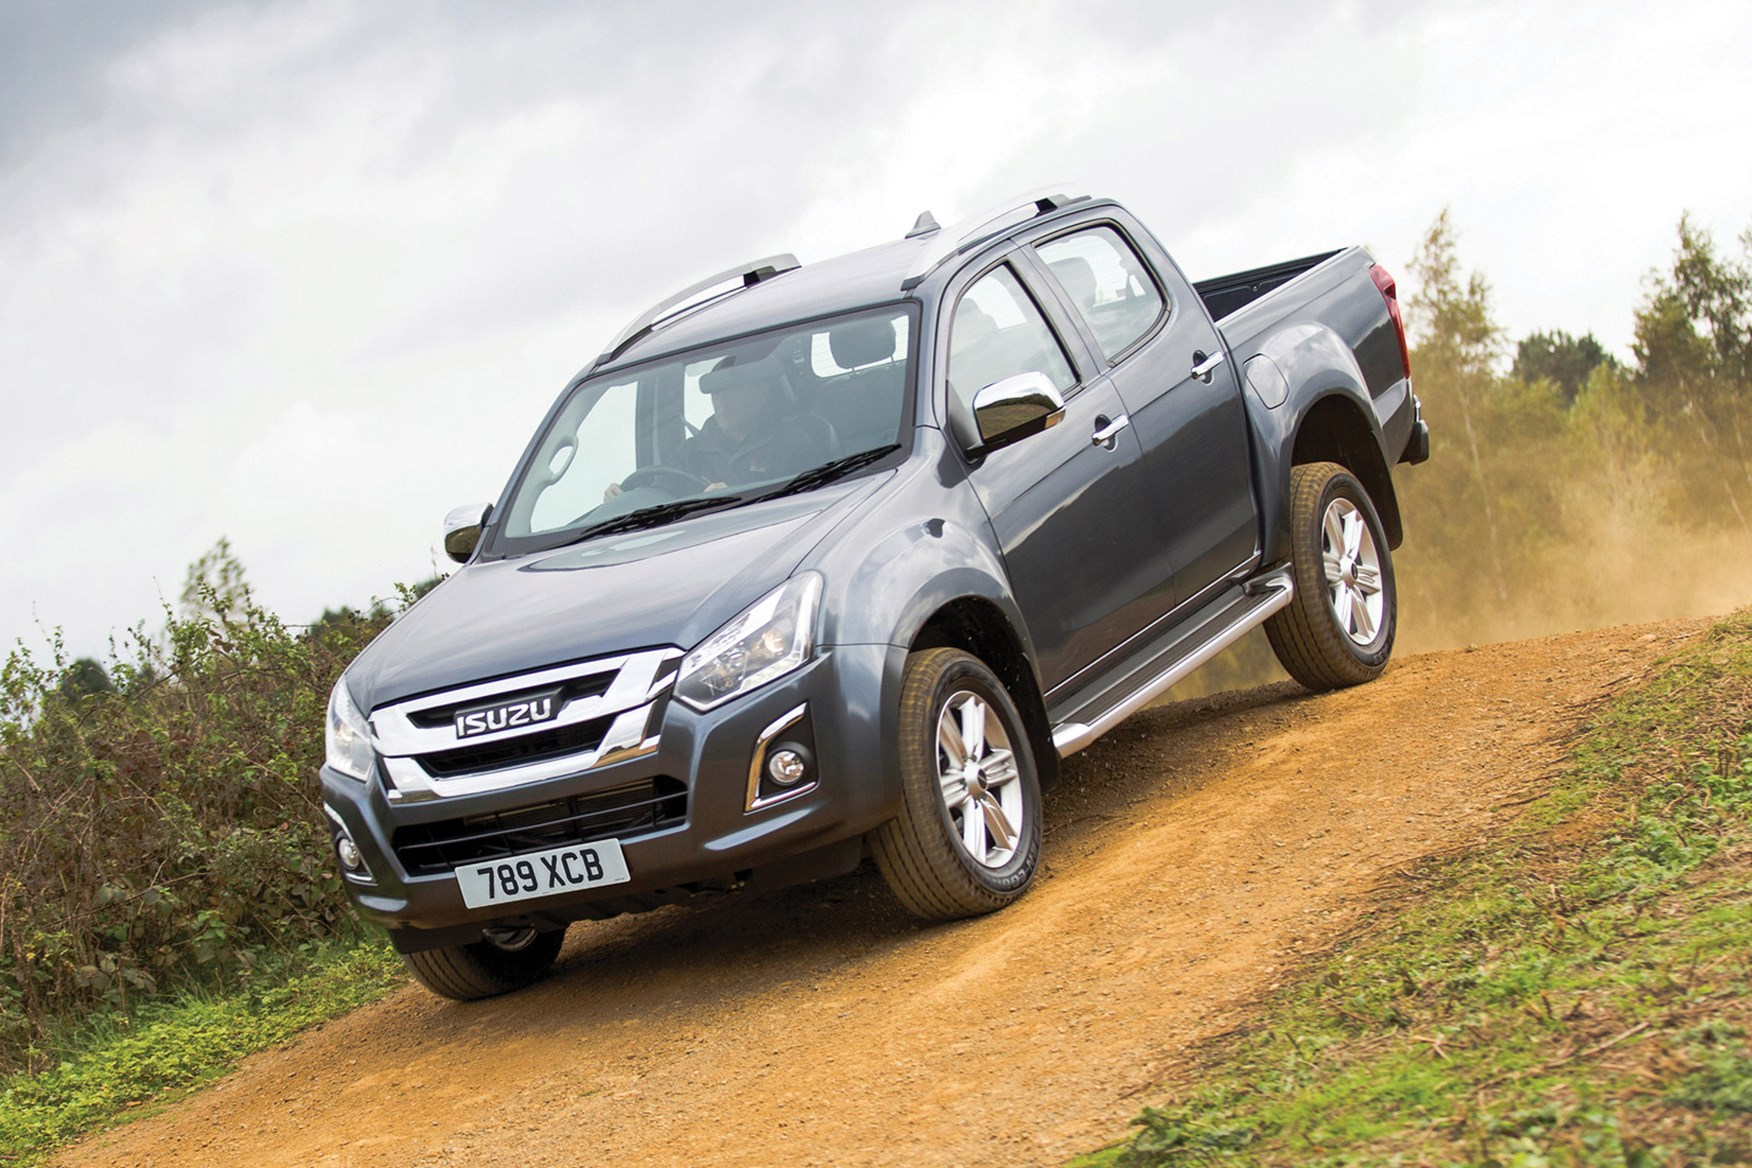 Isuzu D-Max full review on Parkers Vans - oaff-road capability